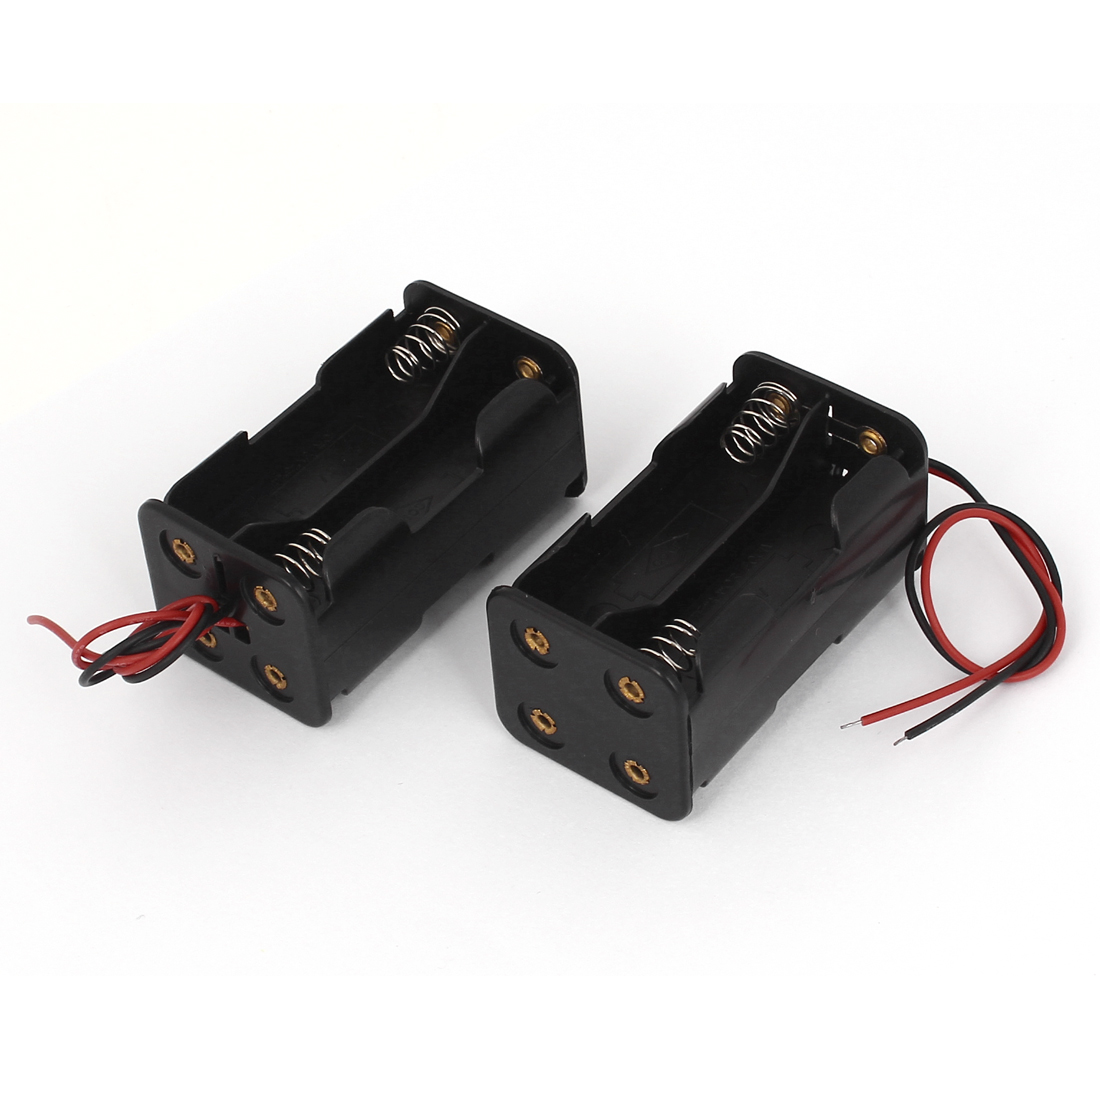 2pcs Plastic Double Sides 2-Wired 4 x 1.5V AA Battery Case Storage Boxes Holder